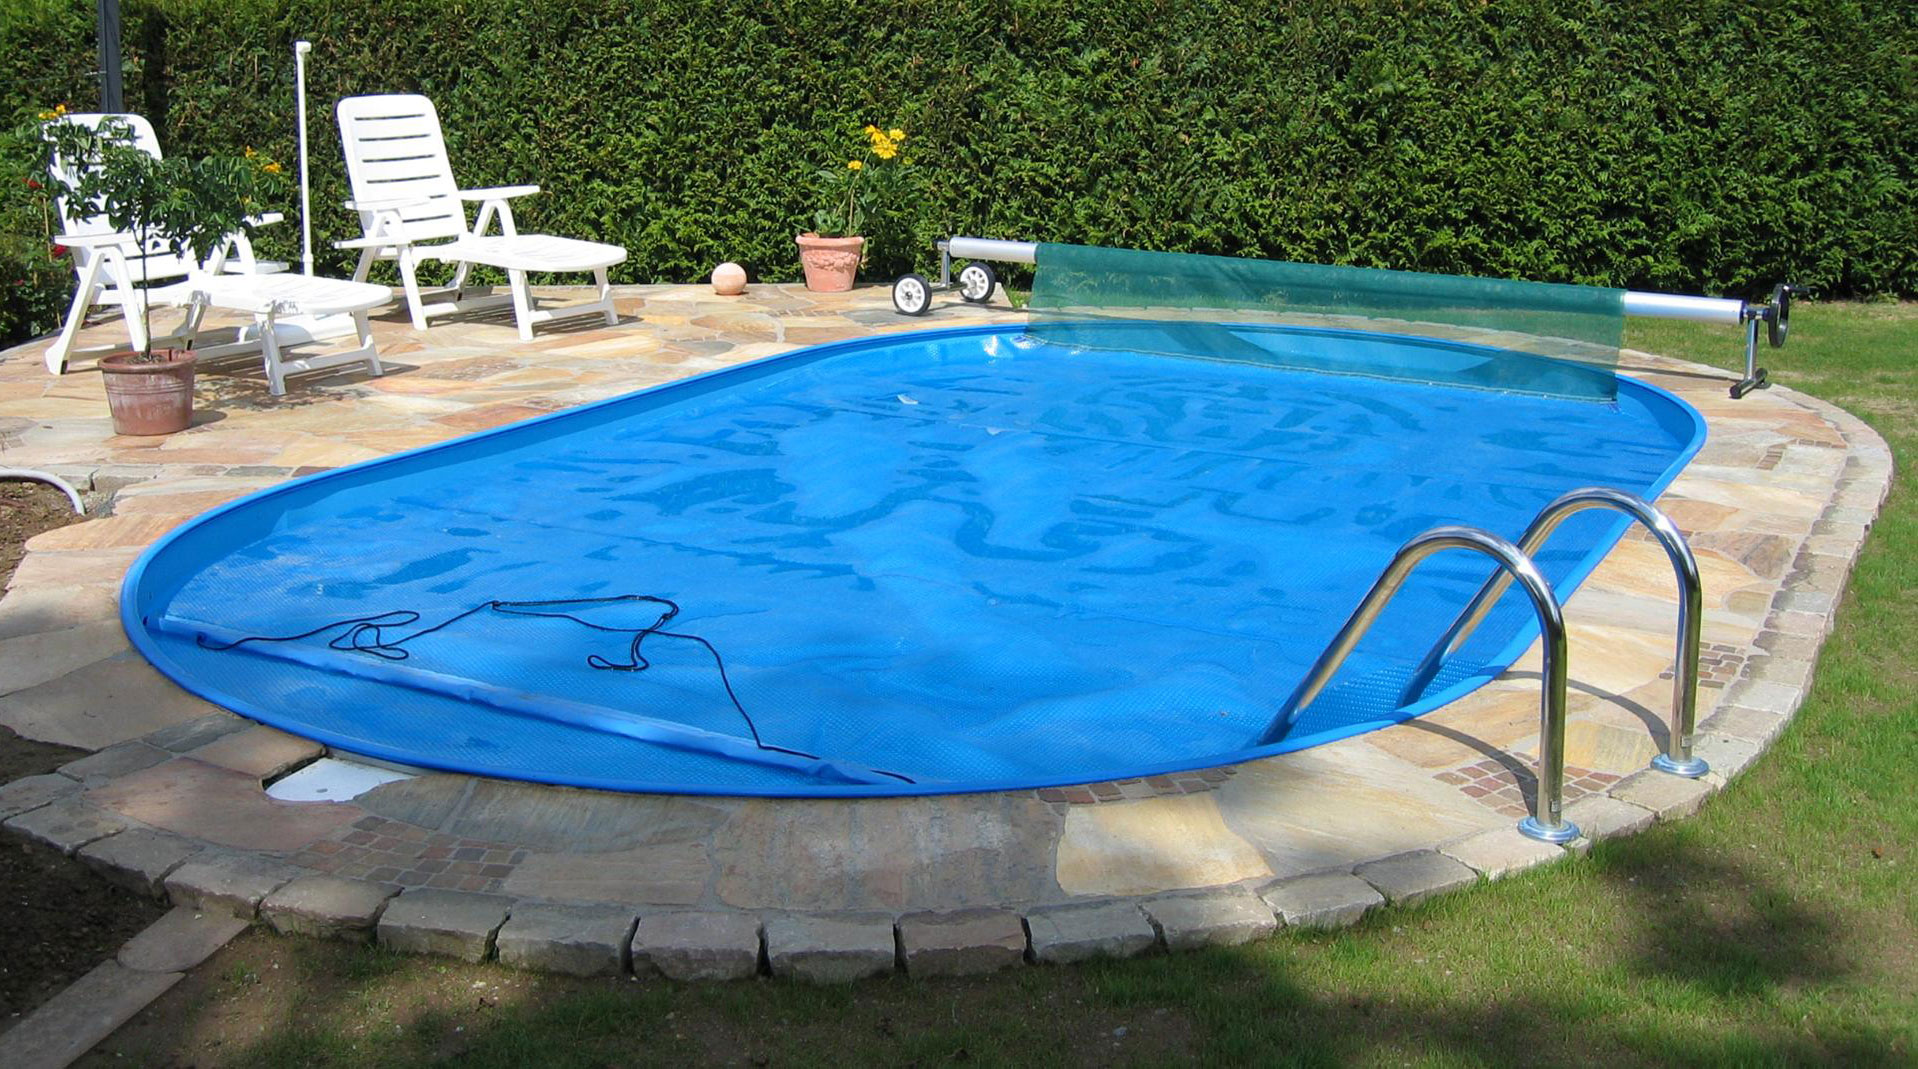 pool schwimmbecken trend oval mit sandfilter 4 50x2 50x1 On oval stahlwandpool